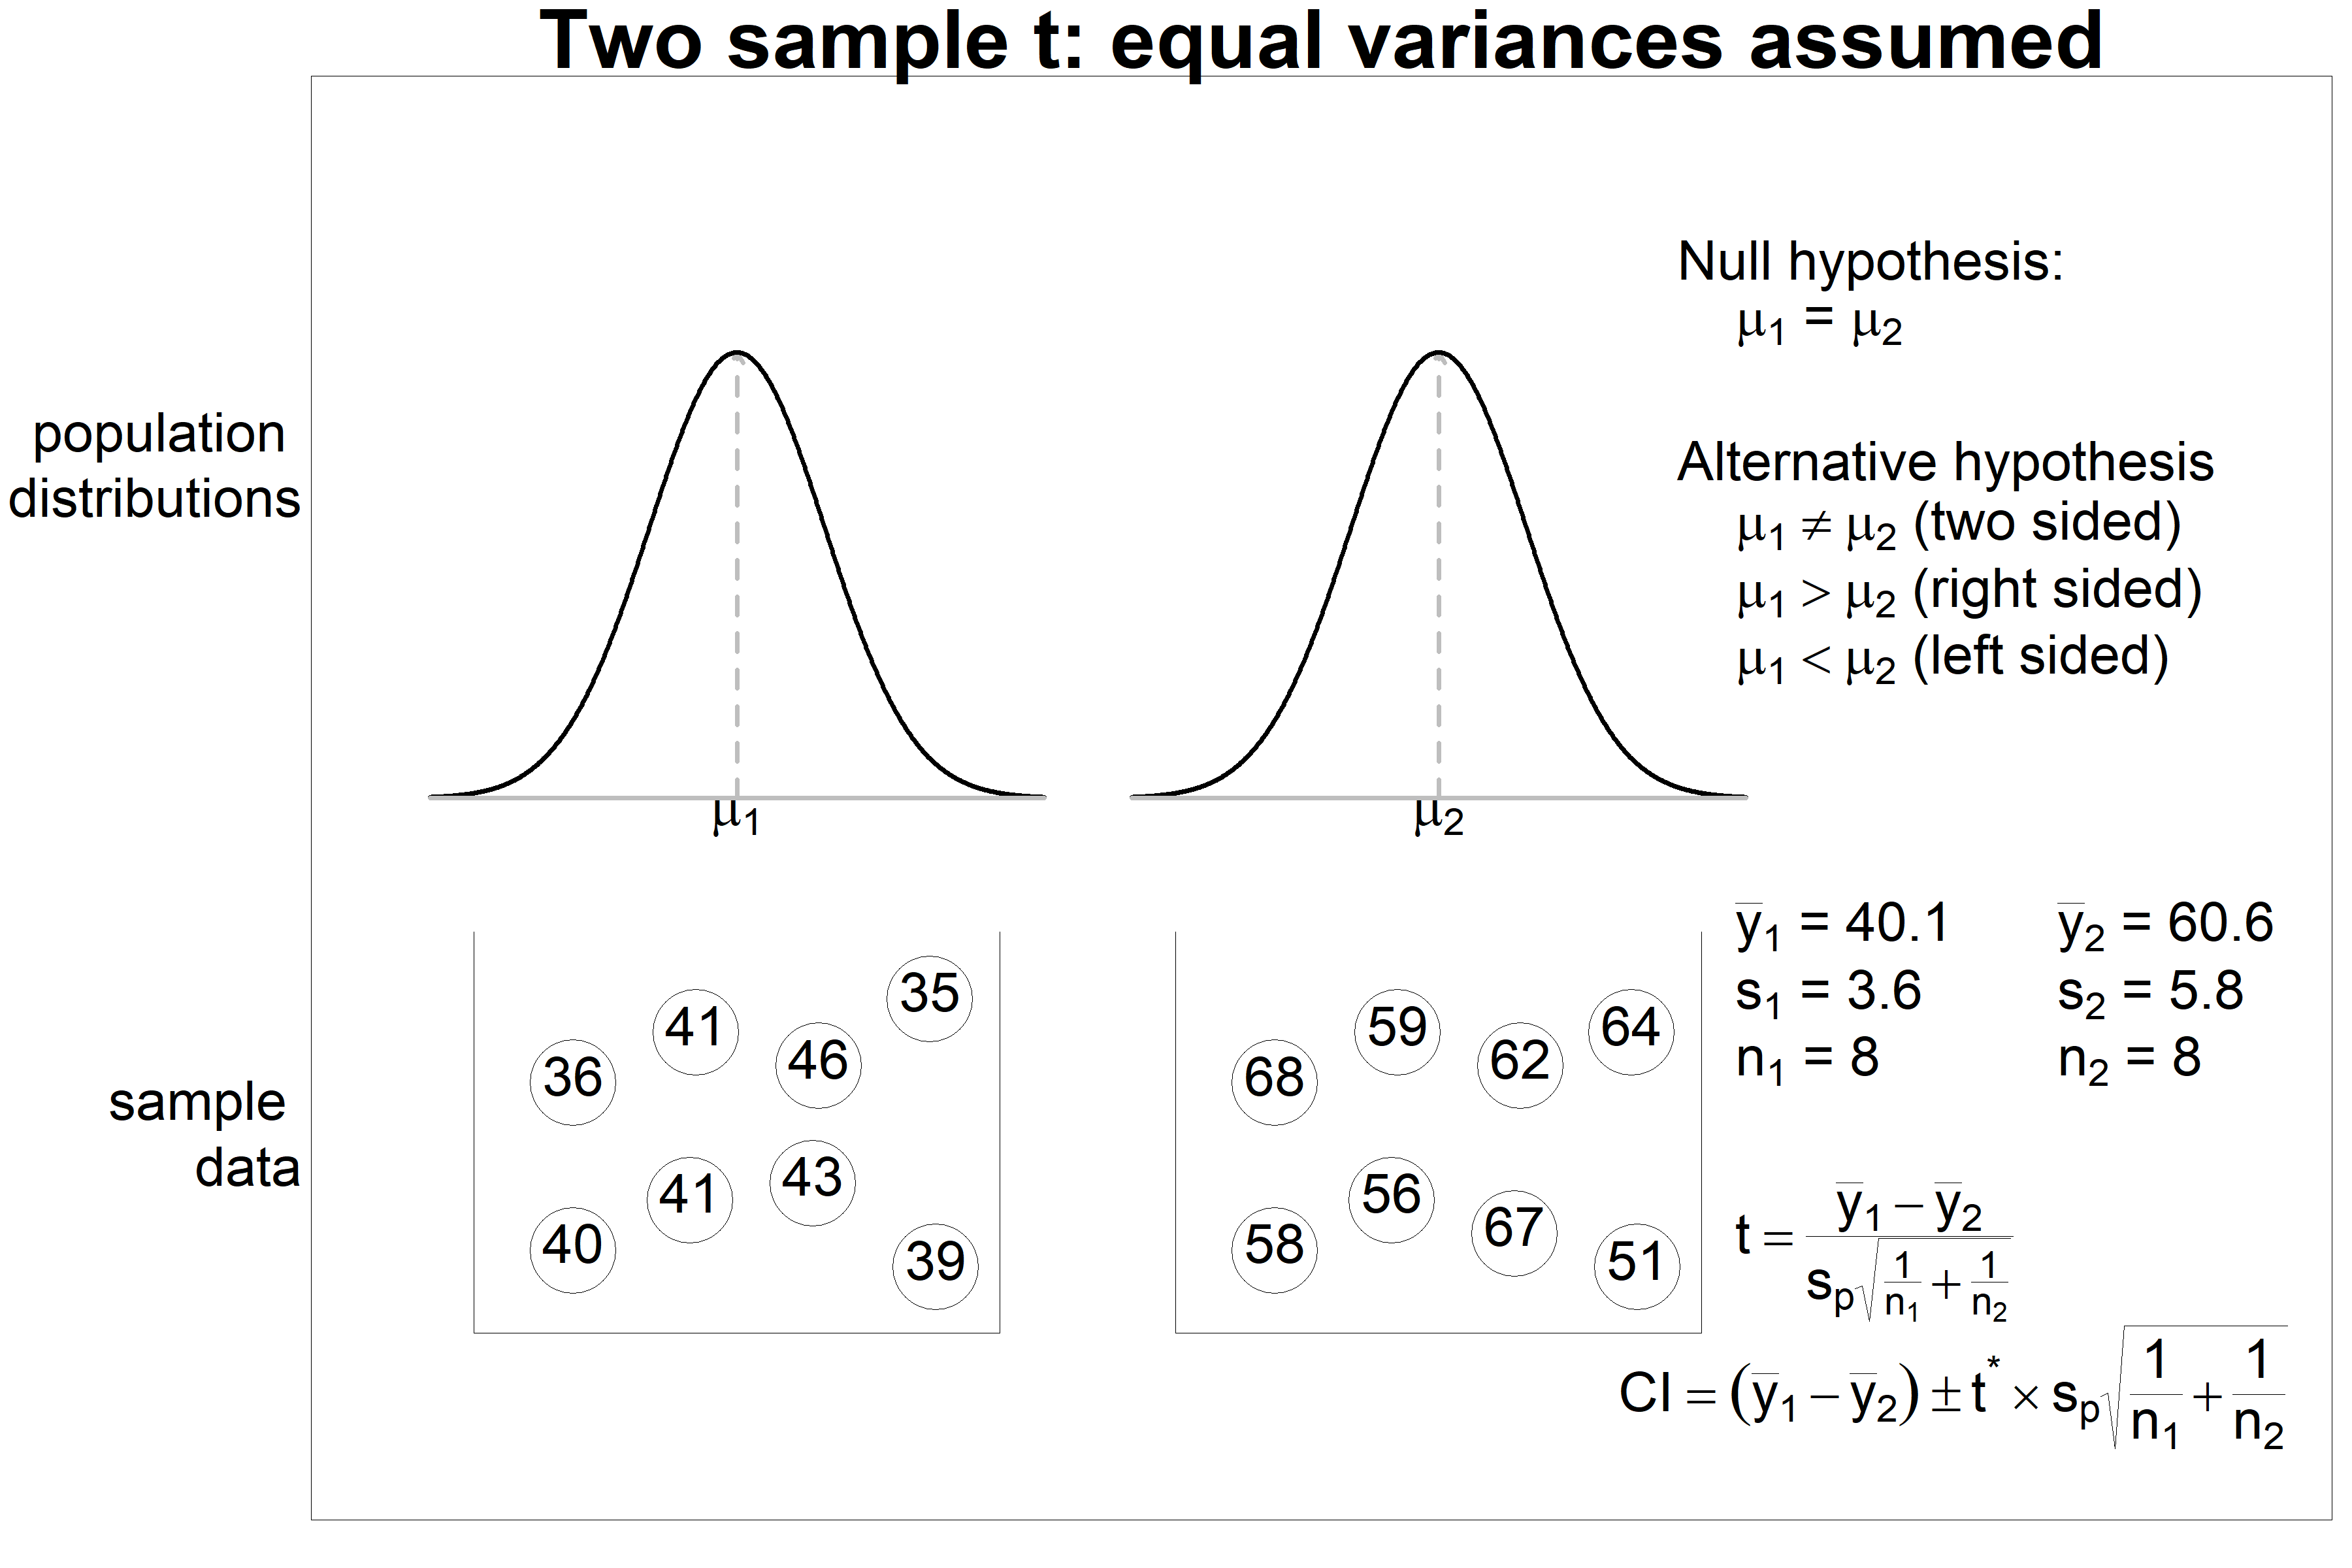 Two sample t test - equal variances assumed